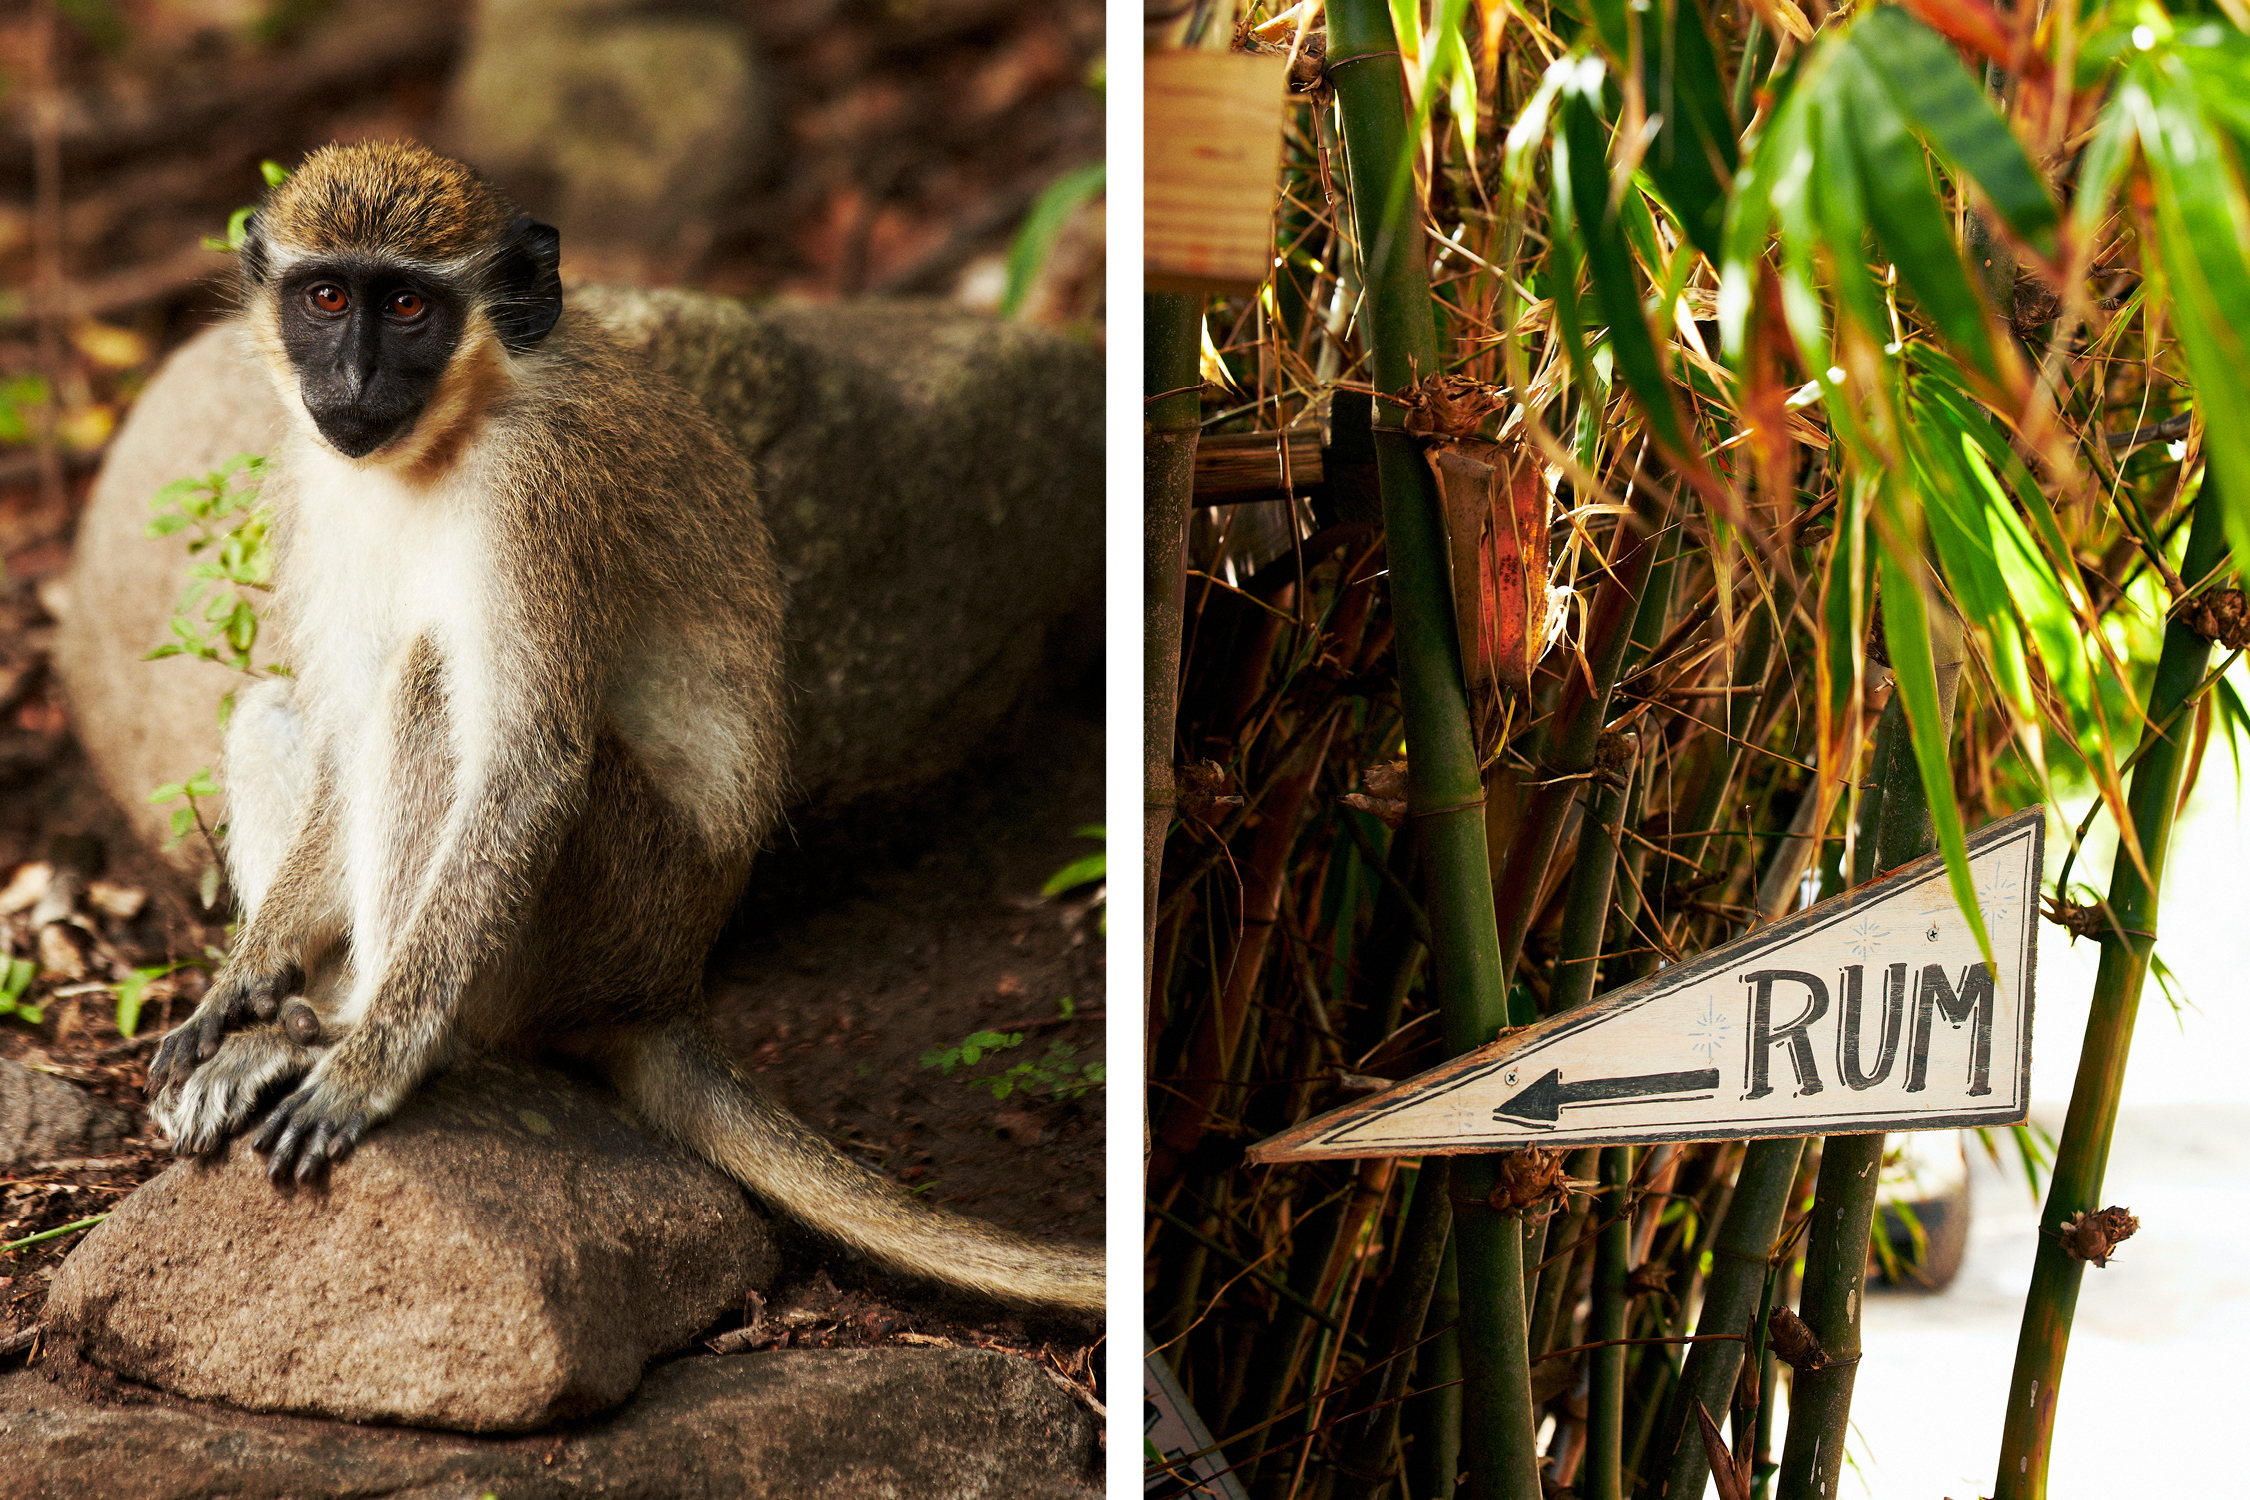 VERVET MONKEYS LIKE THE RUM AT SHIPWRECK BEACH BAR AND GRILL